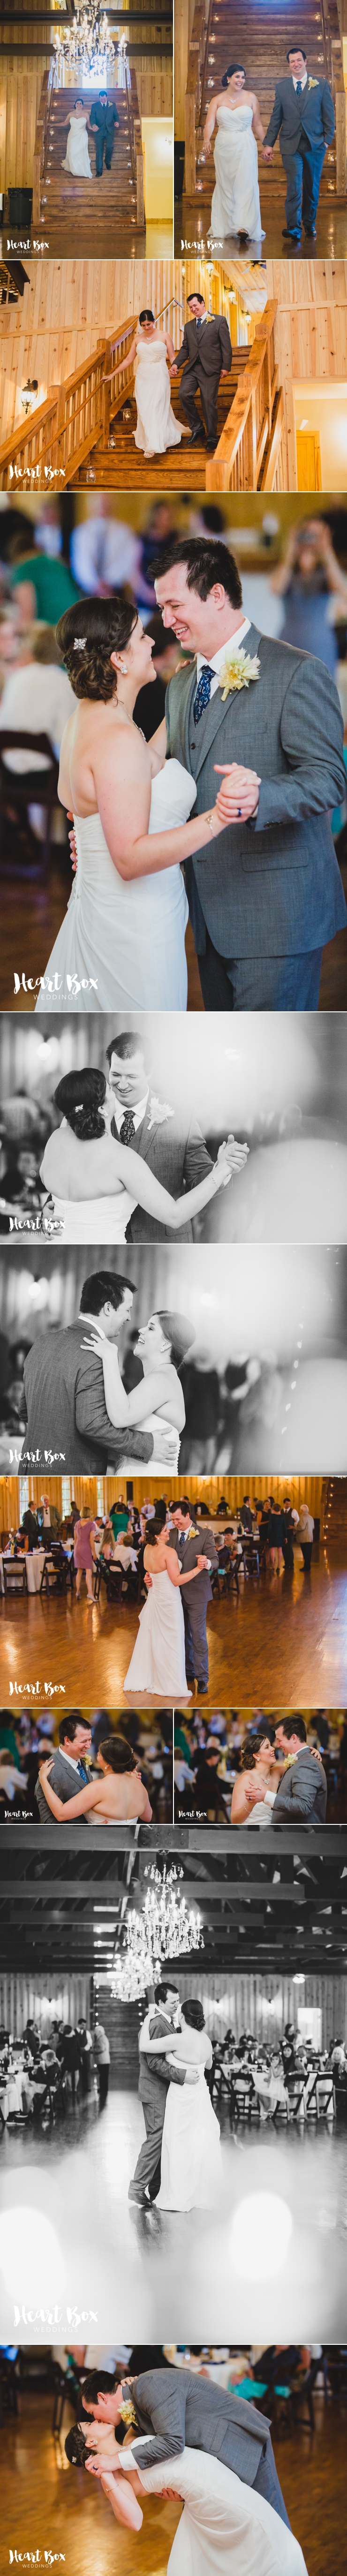 Waggoner Wedding Collages 12.jpg